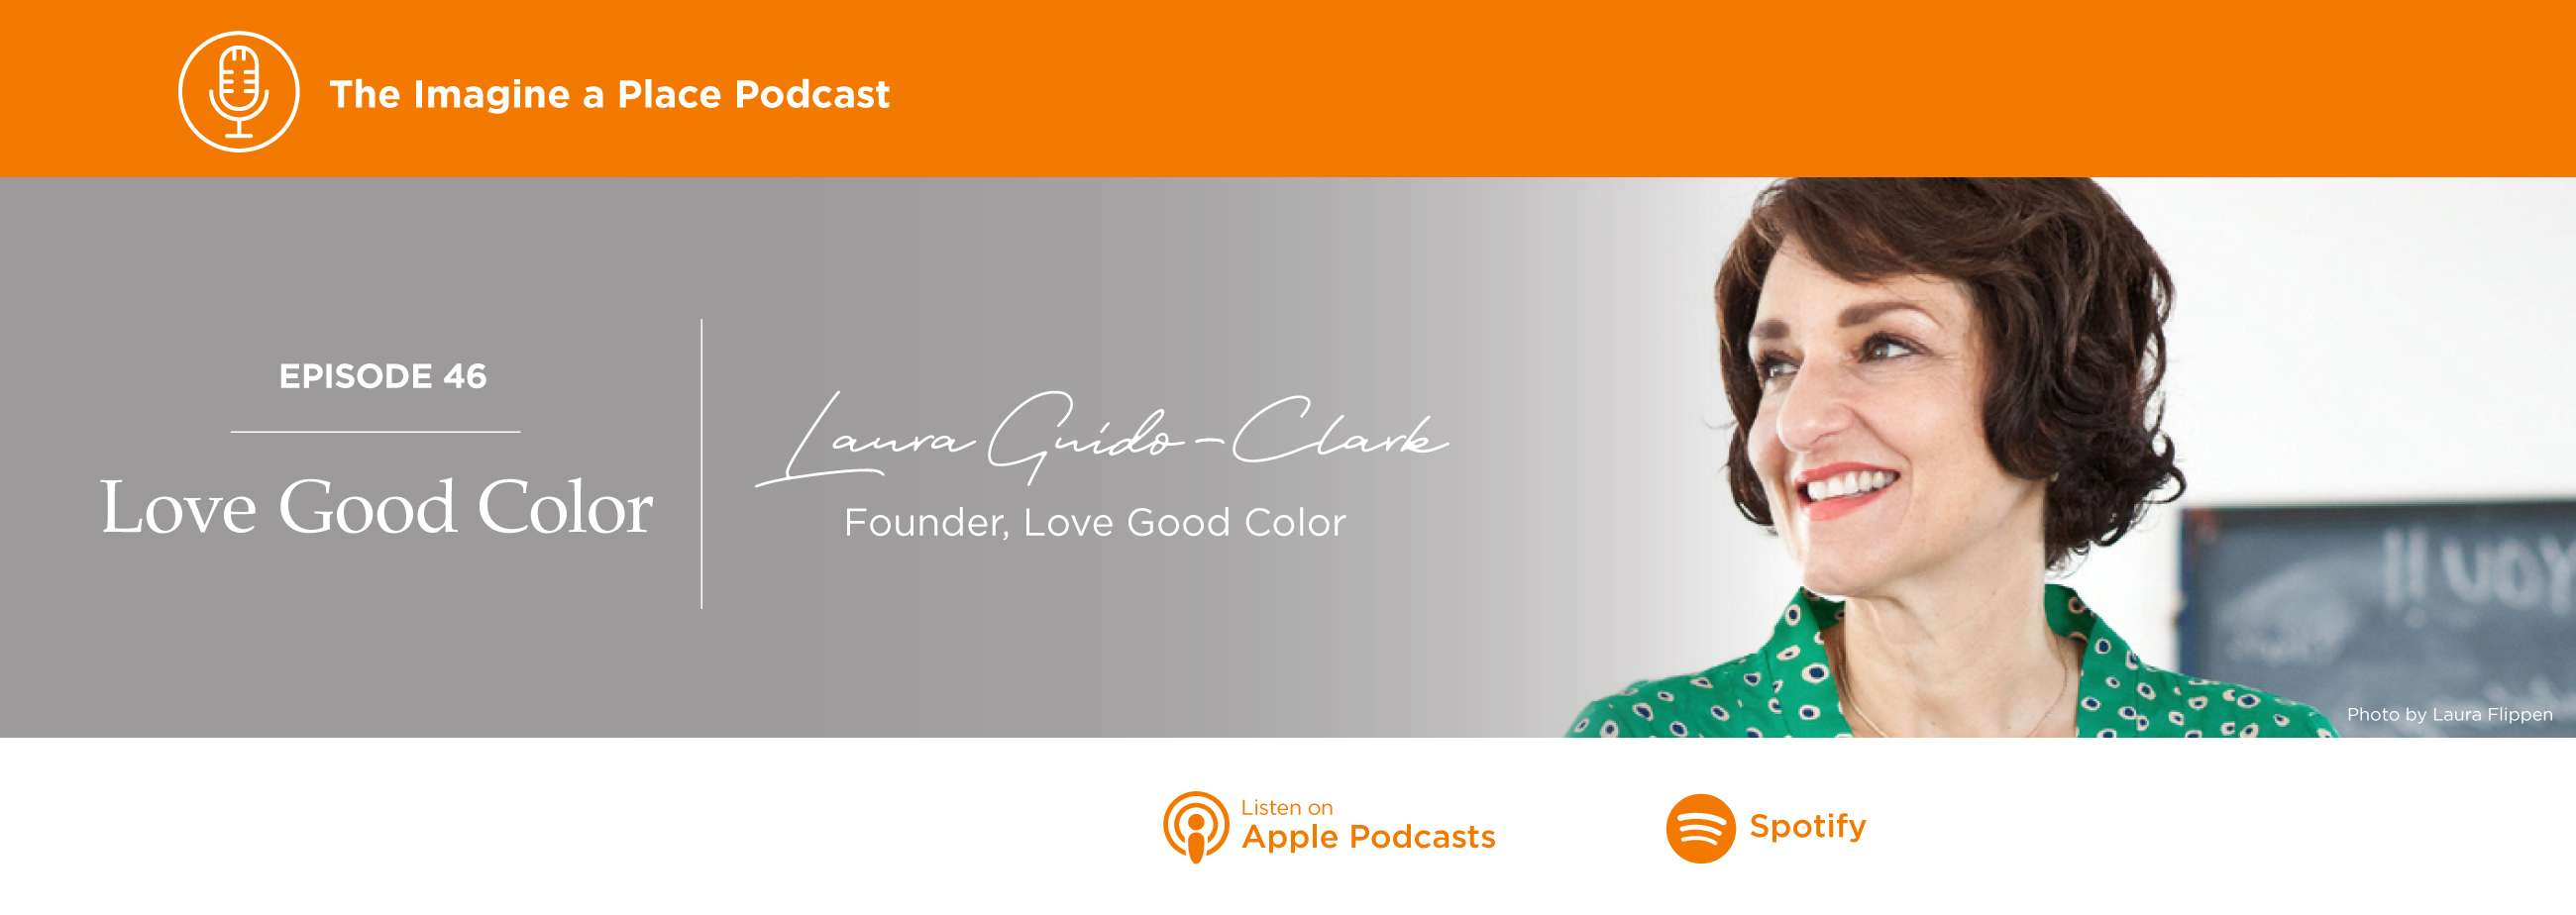 Laura Guido Clark on the Imagine a Place podcast